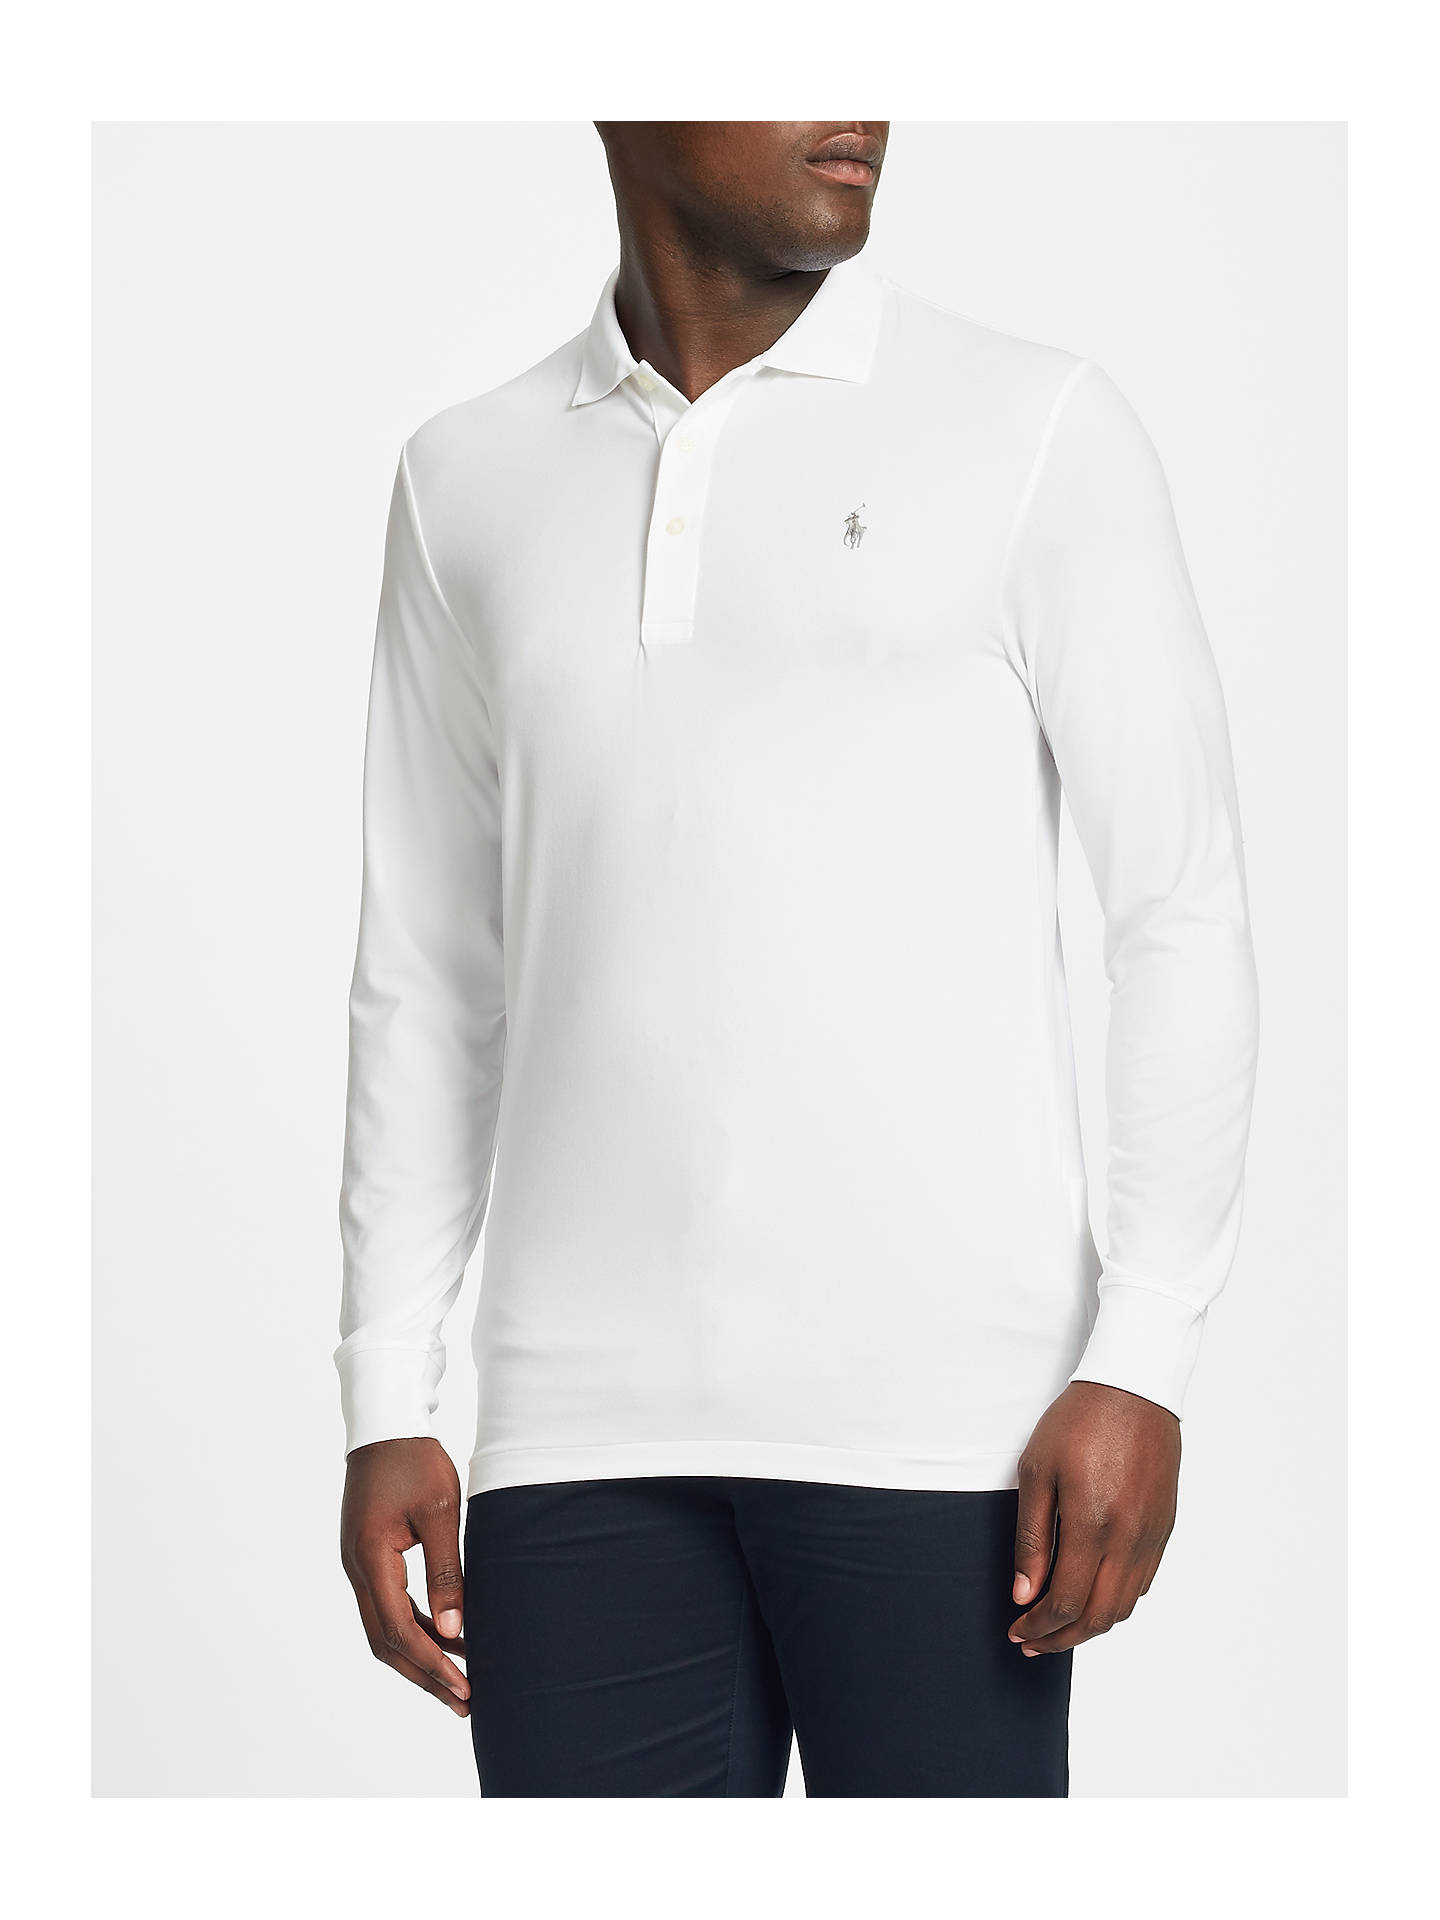 3f5112d1f67448 Buy Polo Golf by Ralph Lauren Lightweight Performance Polo Shirt, White, S  Online at ...